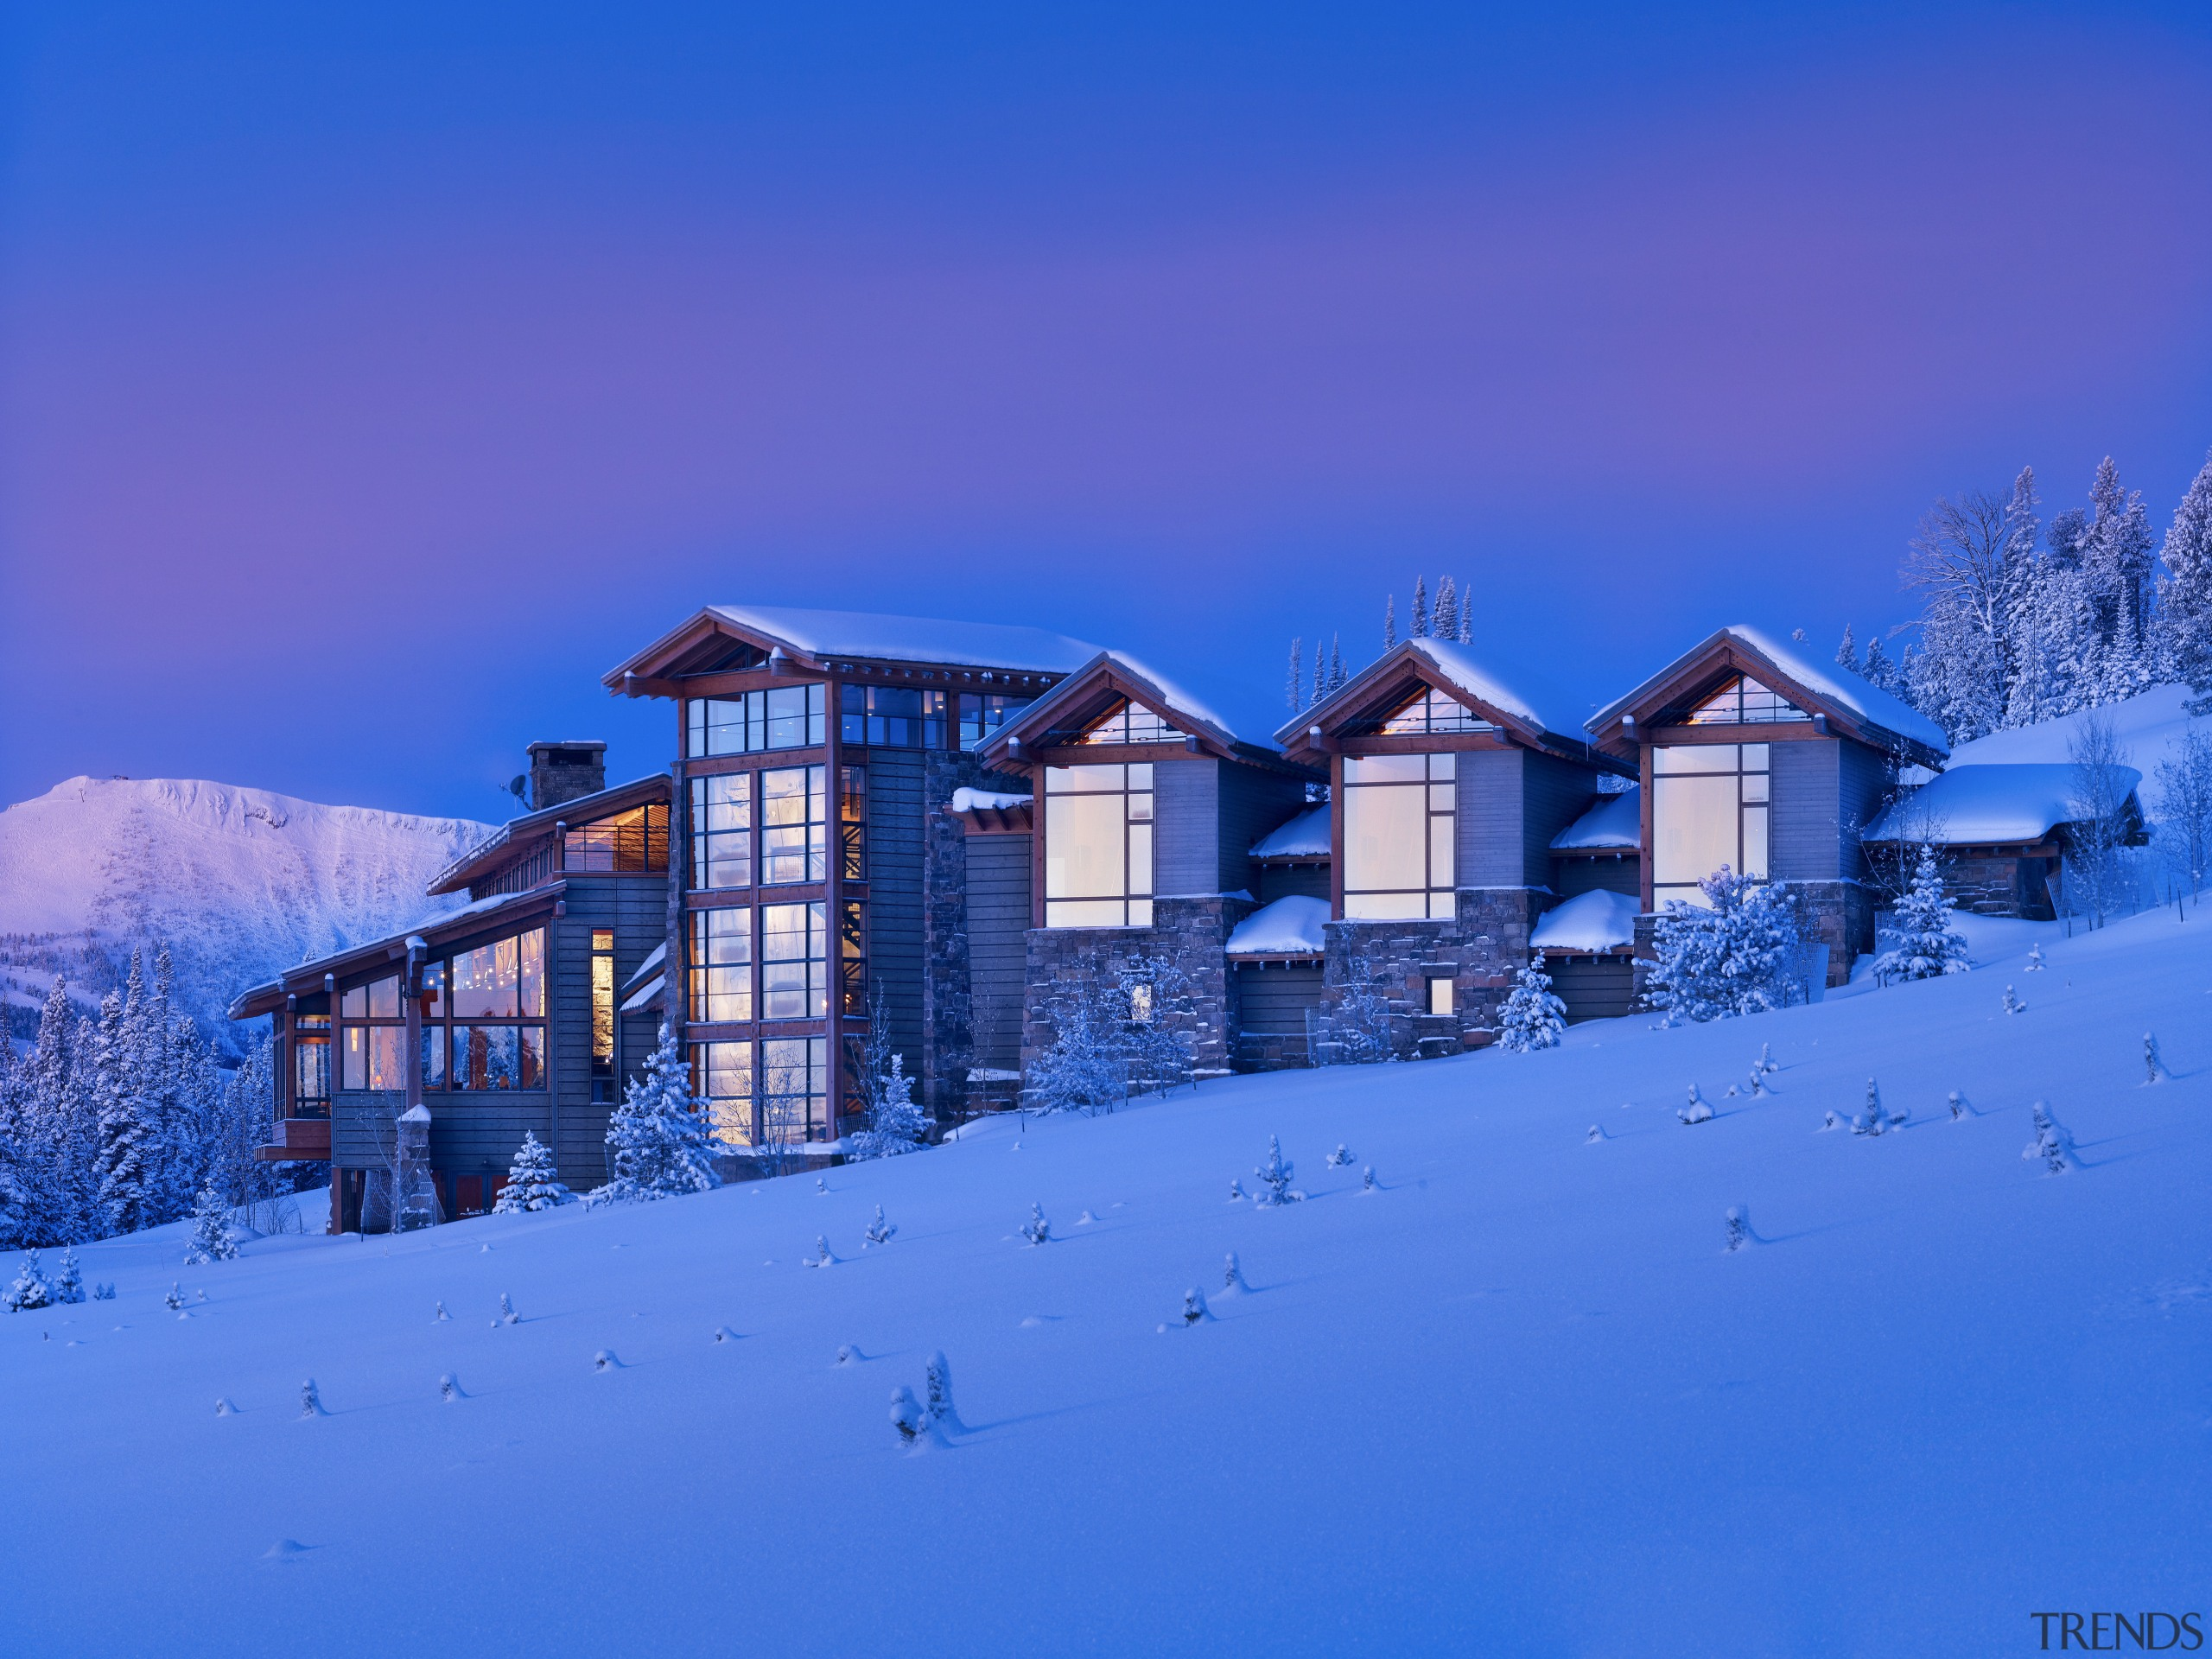 Gabled roofs and weatherboards abound in this Montana alps, arctic, atmosphere, blue, building, cloud, evening, freezing, home, house, light, log cabin, morning, mountain, mountain range, real estate, sky, snow, winter, blue